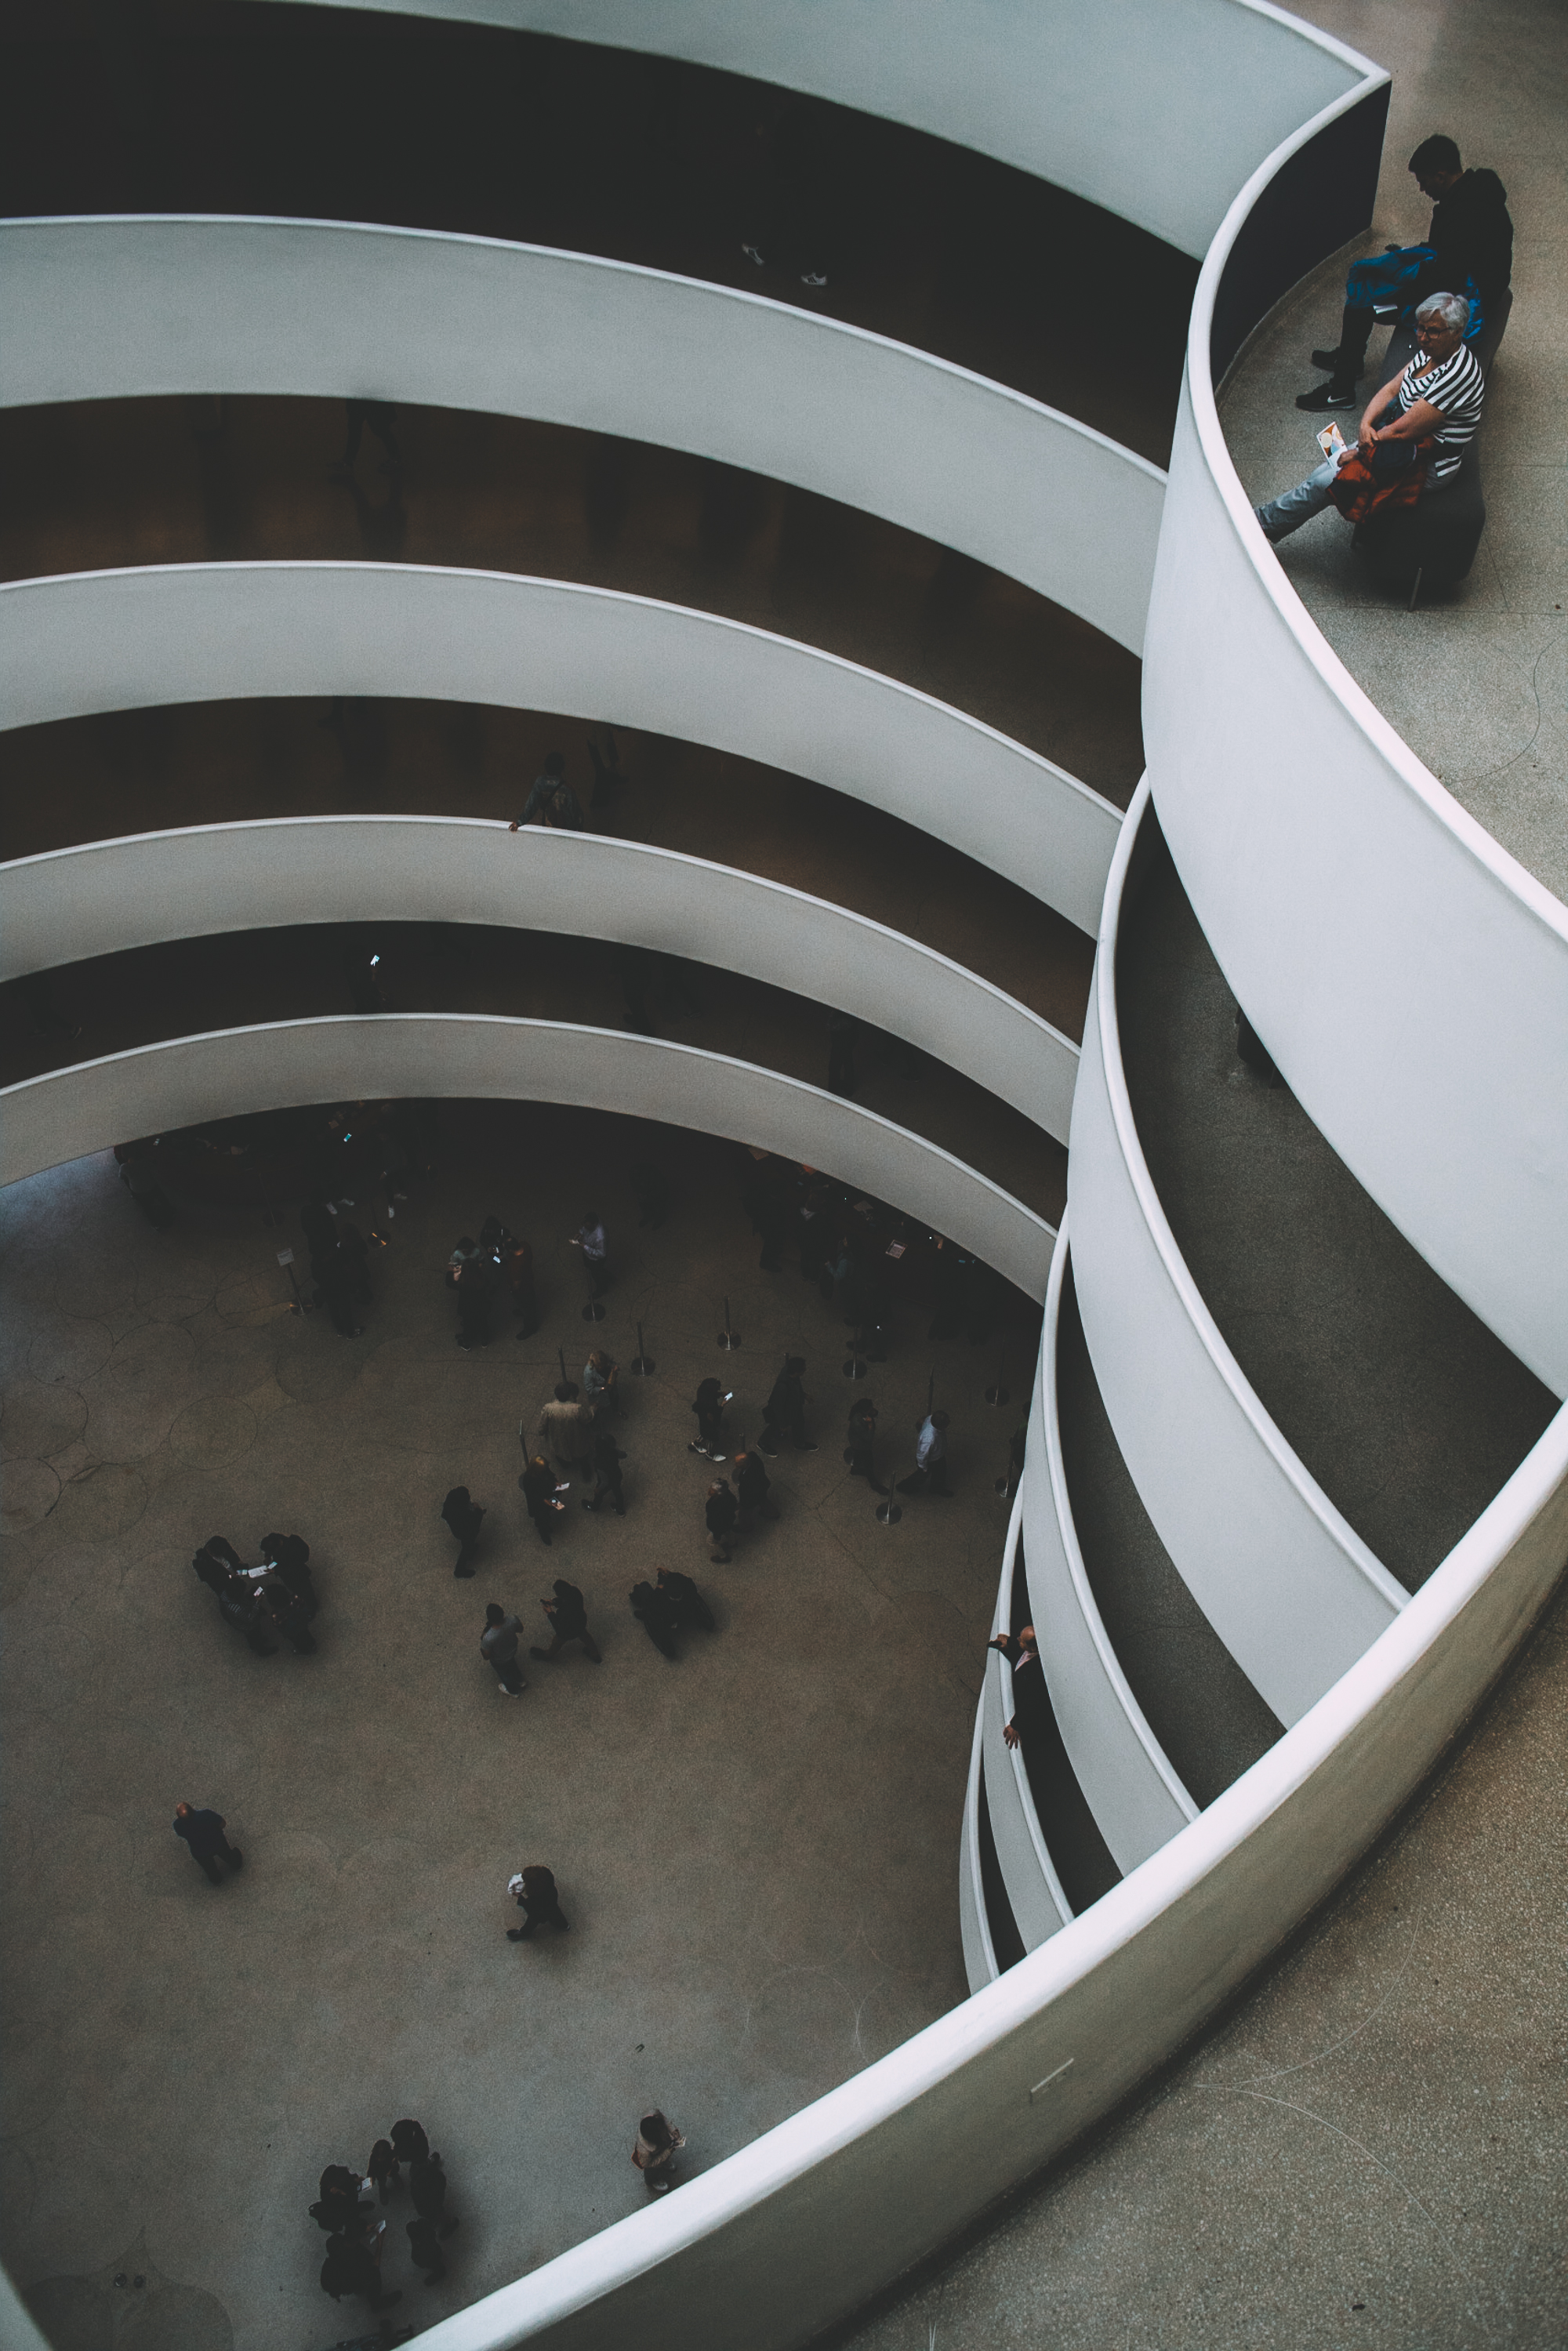 Personal work shot at the Guggenheim, NYC.